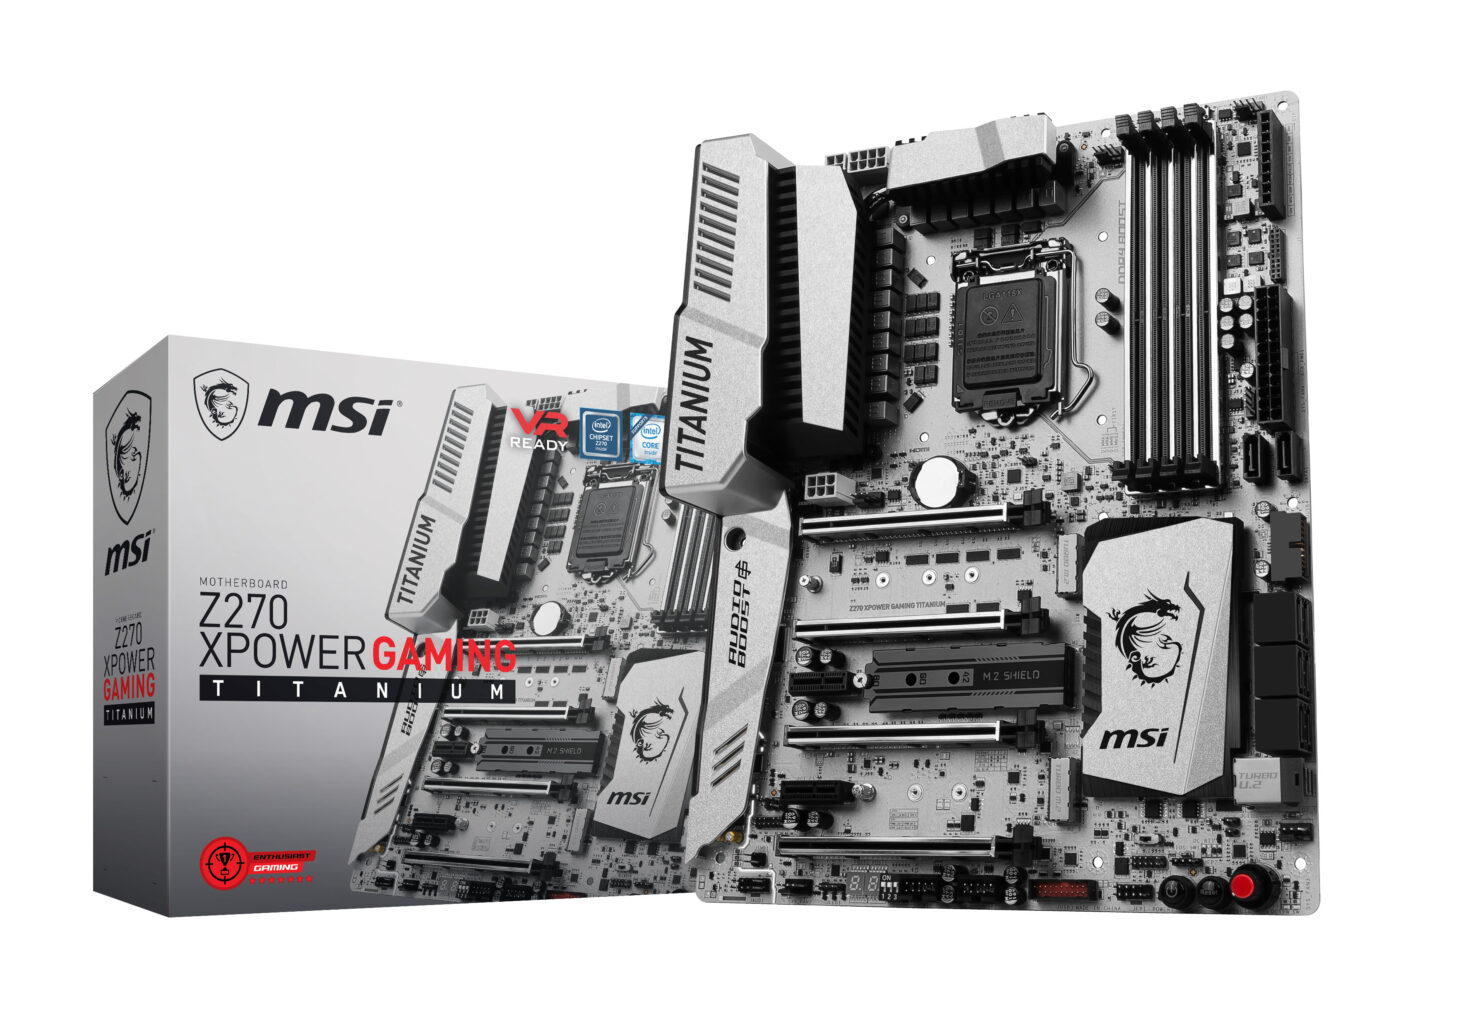 msi-z270_xpower_gaming_titanium-product_pictures-box